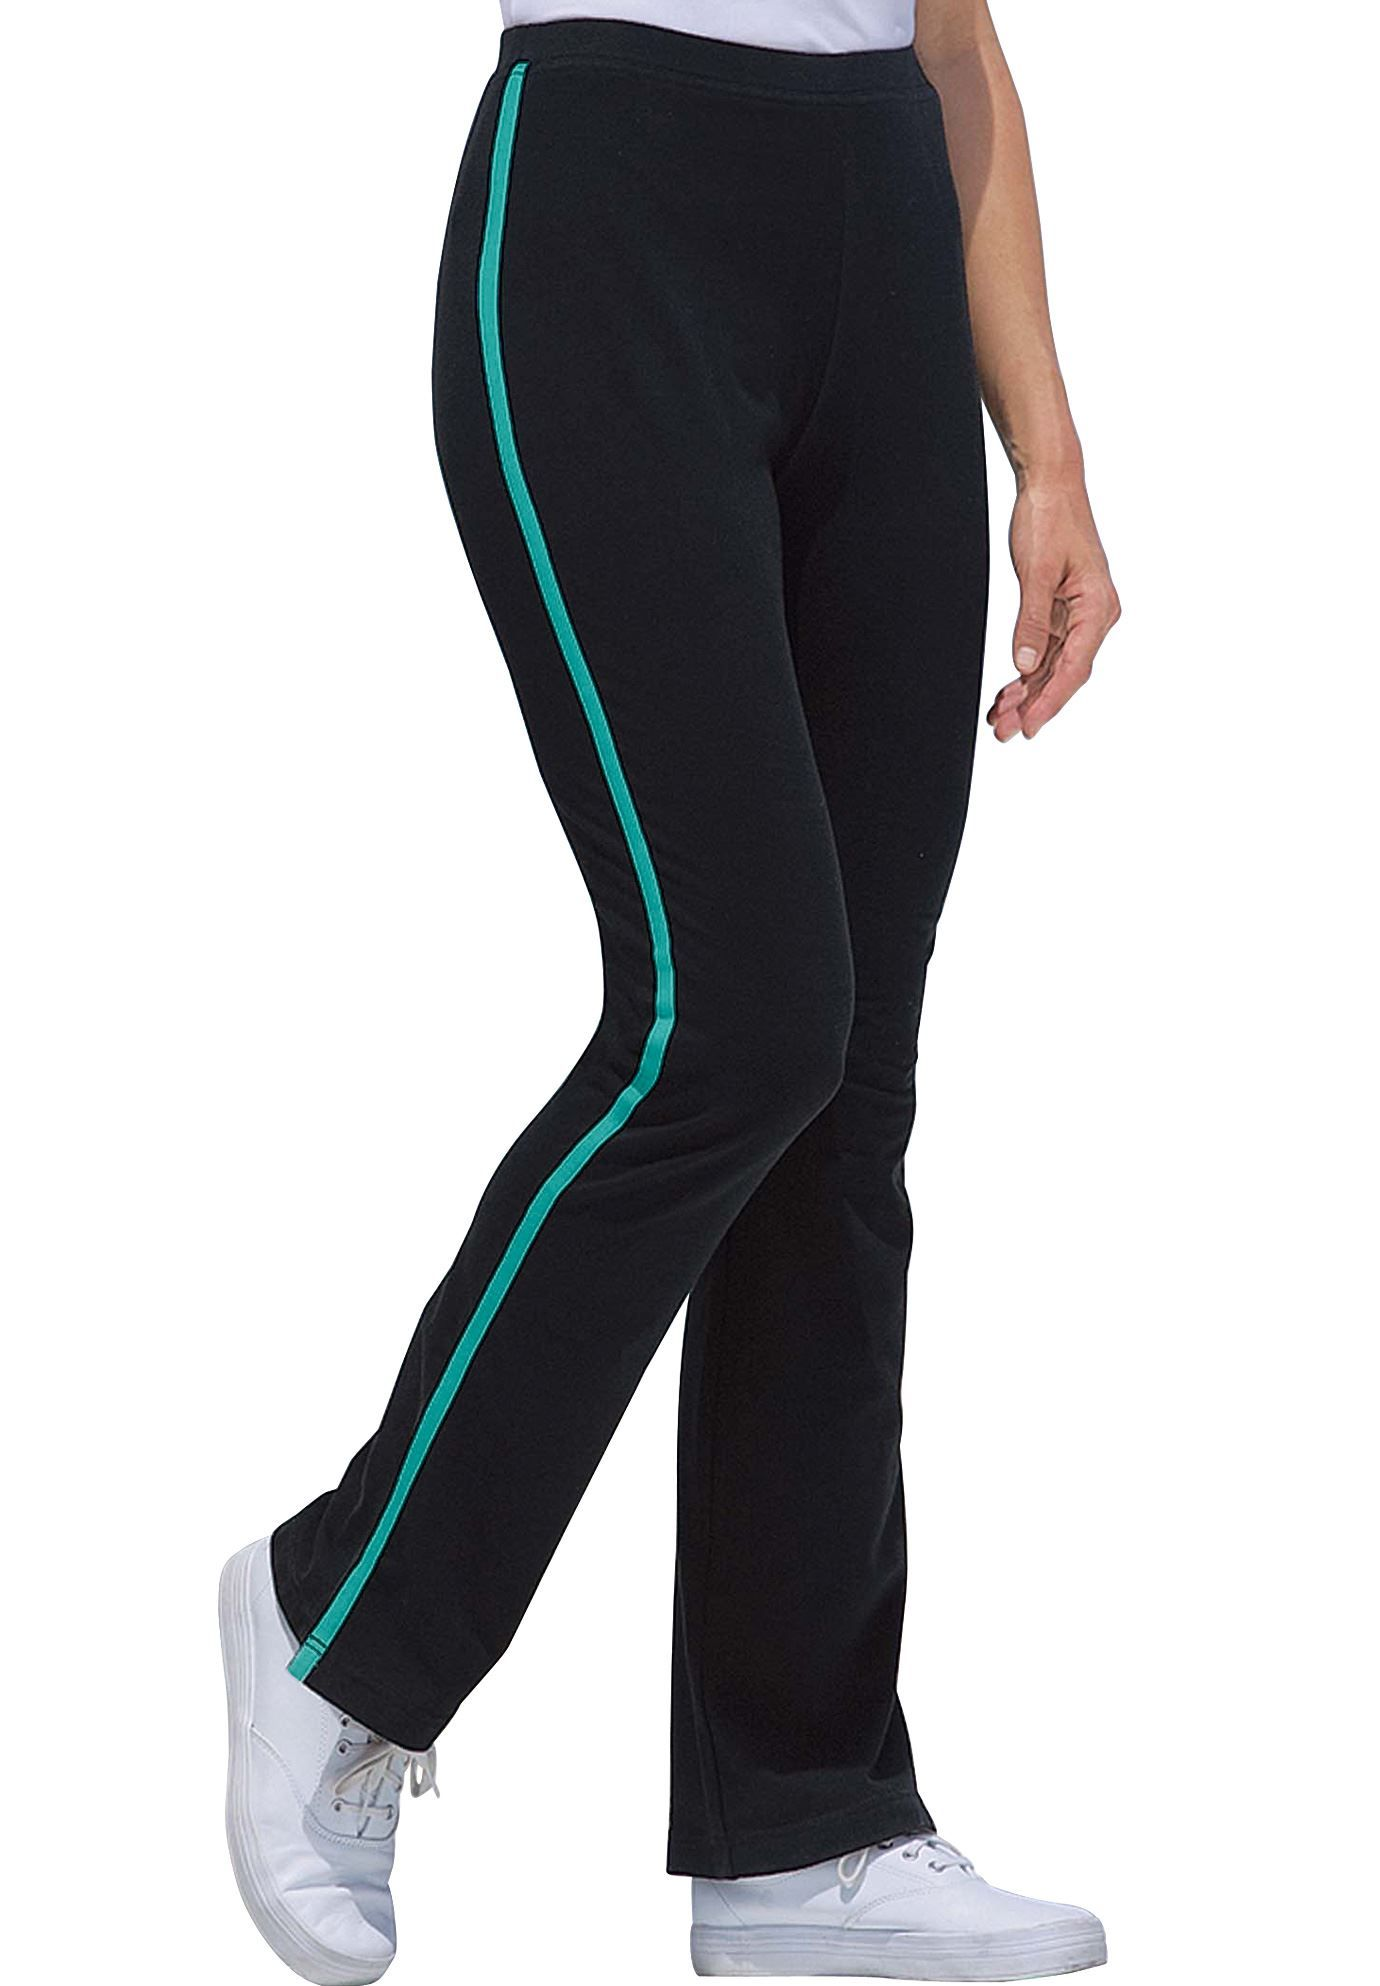 6717a6eea56 Stretch Cotton Side-Striped Bootcut Yoga Pant - Women s Plus Size Clothing